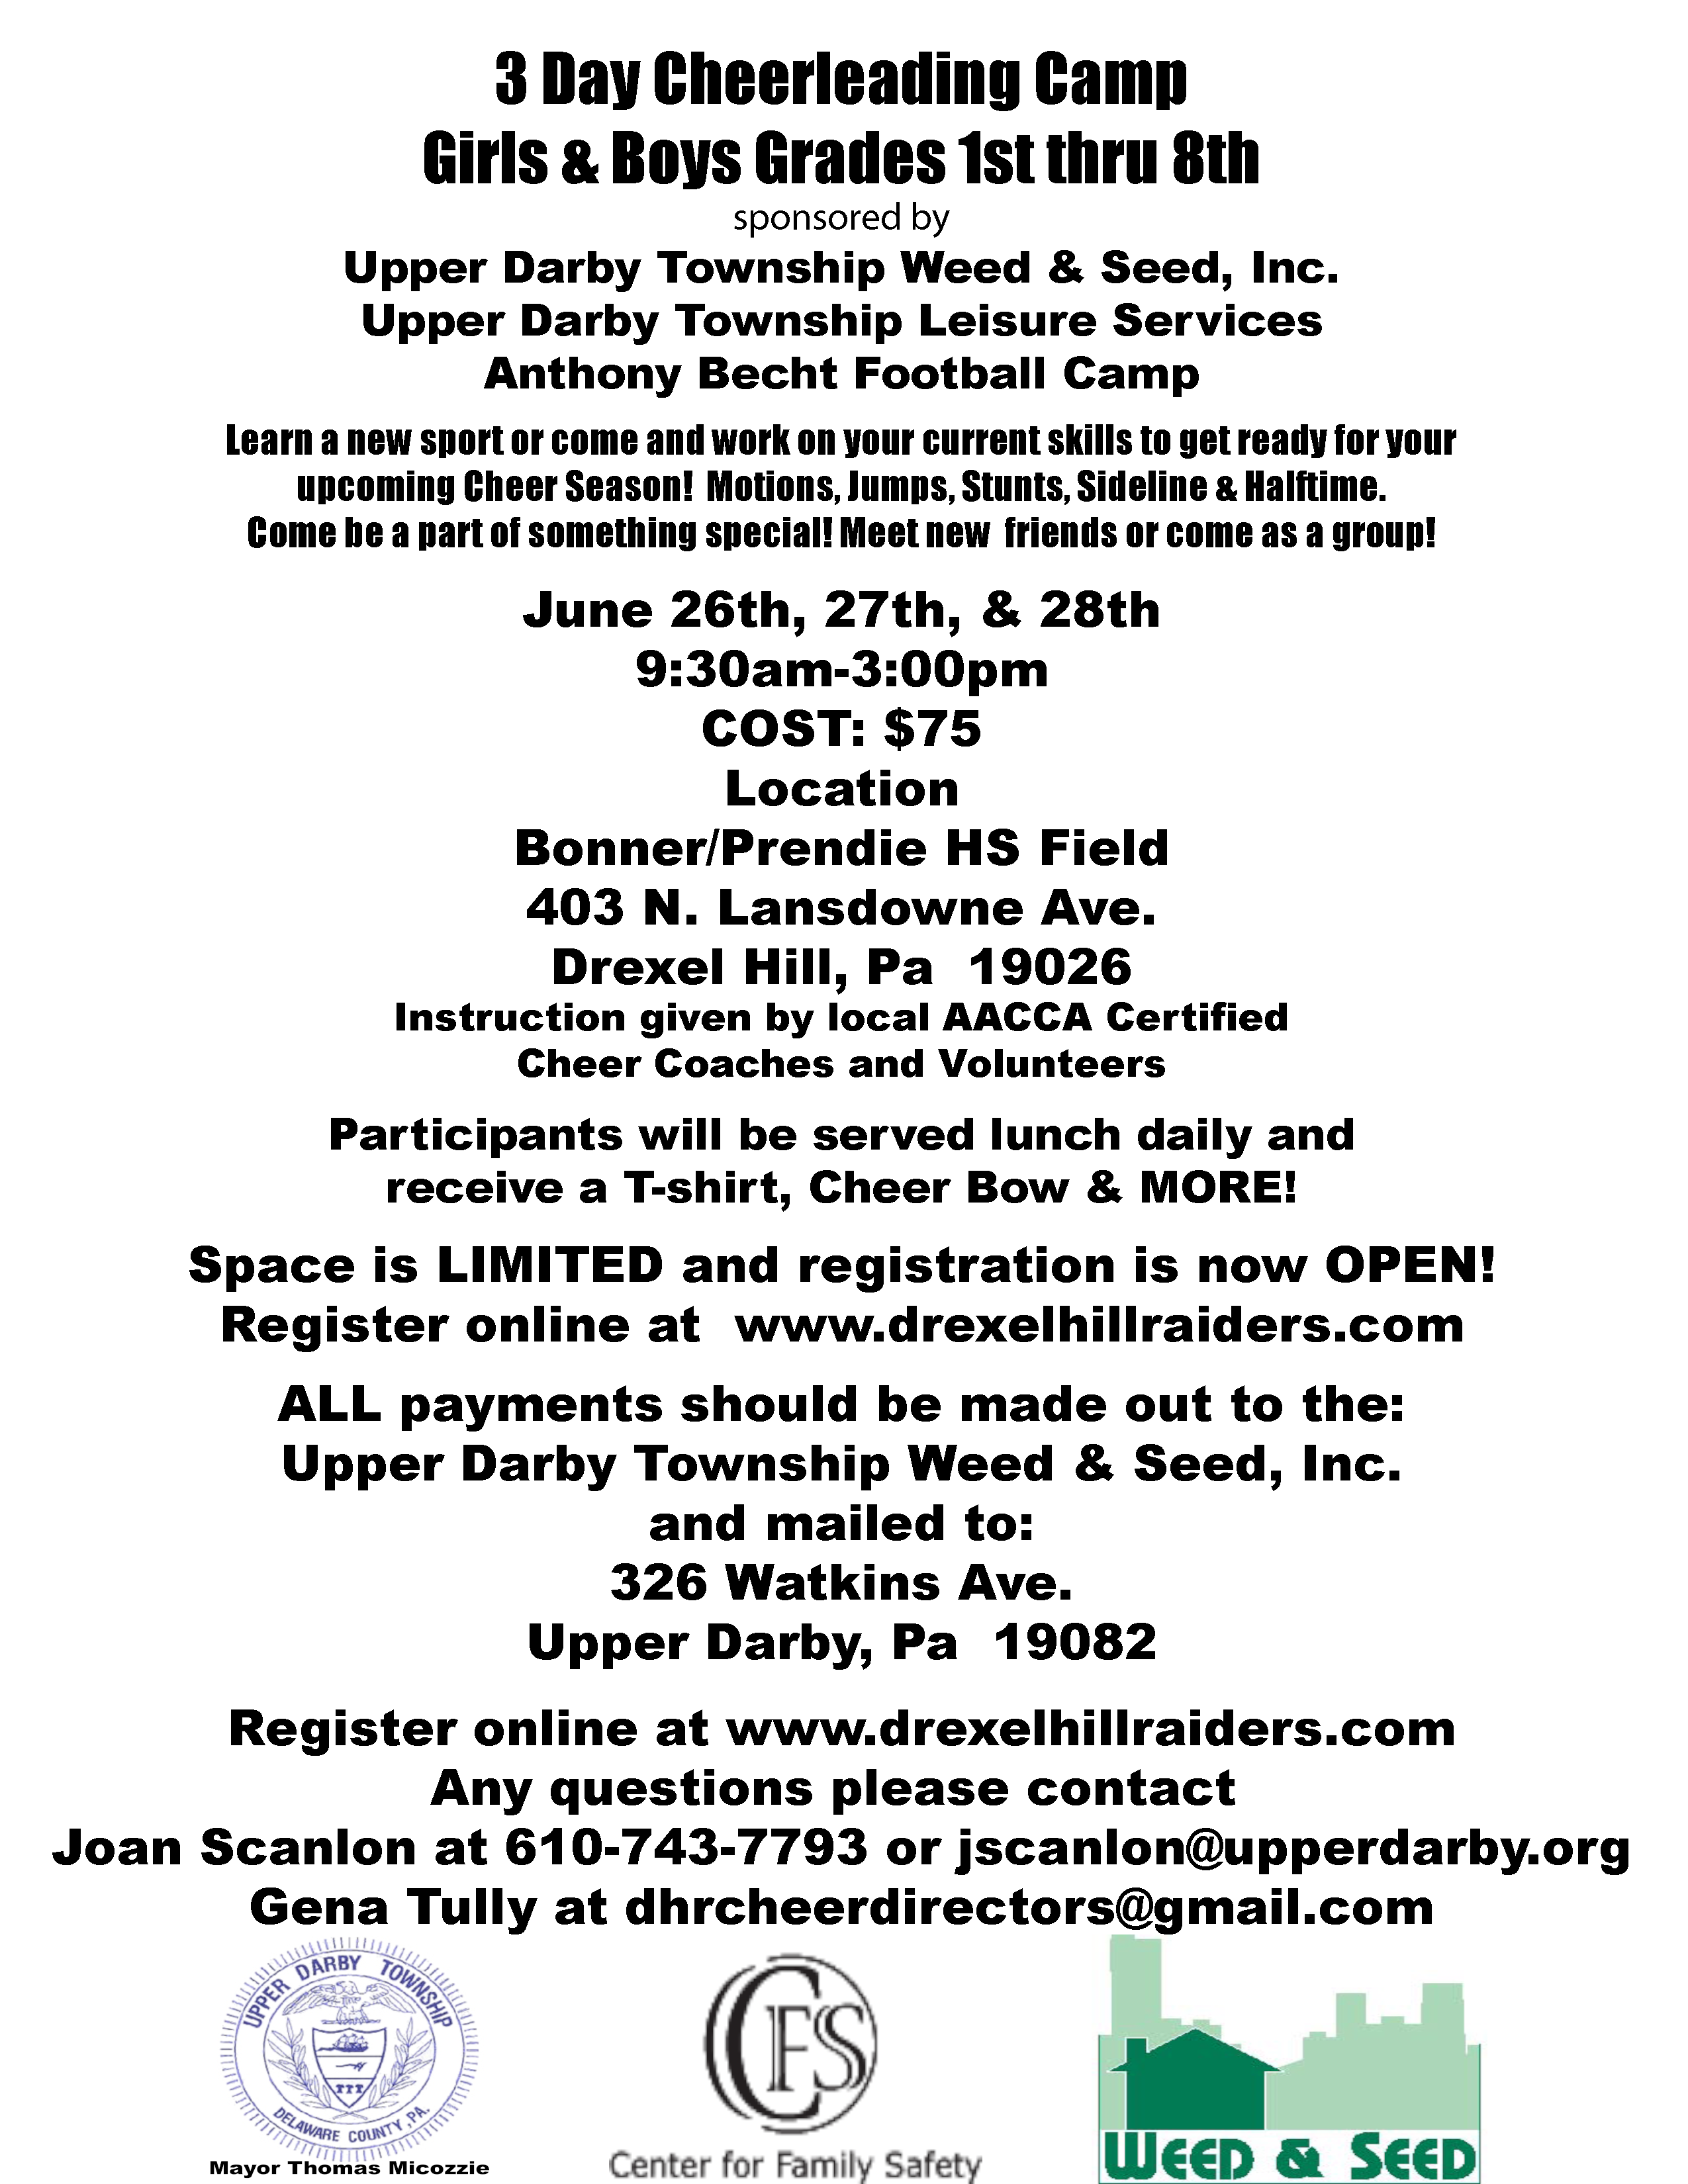 3 day ud twp weed seed camp drexel hill raiders 1betcityfo Choice Image